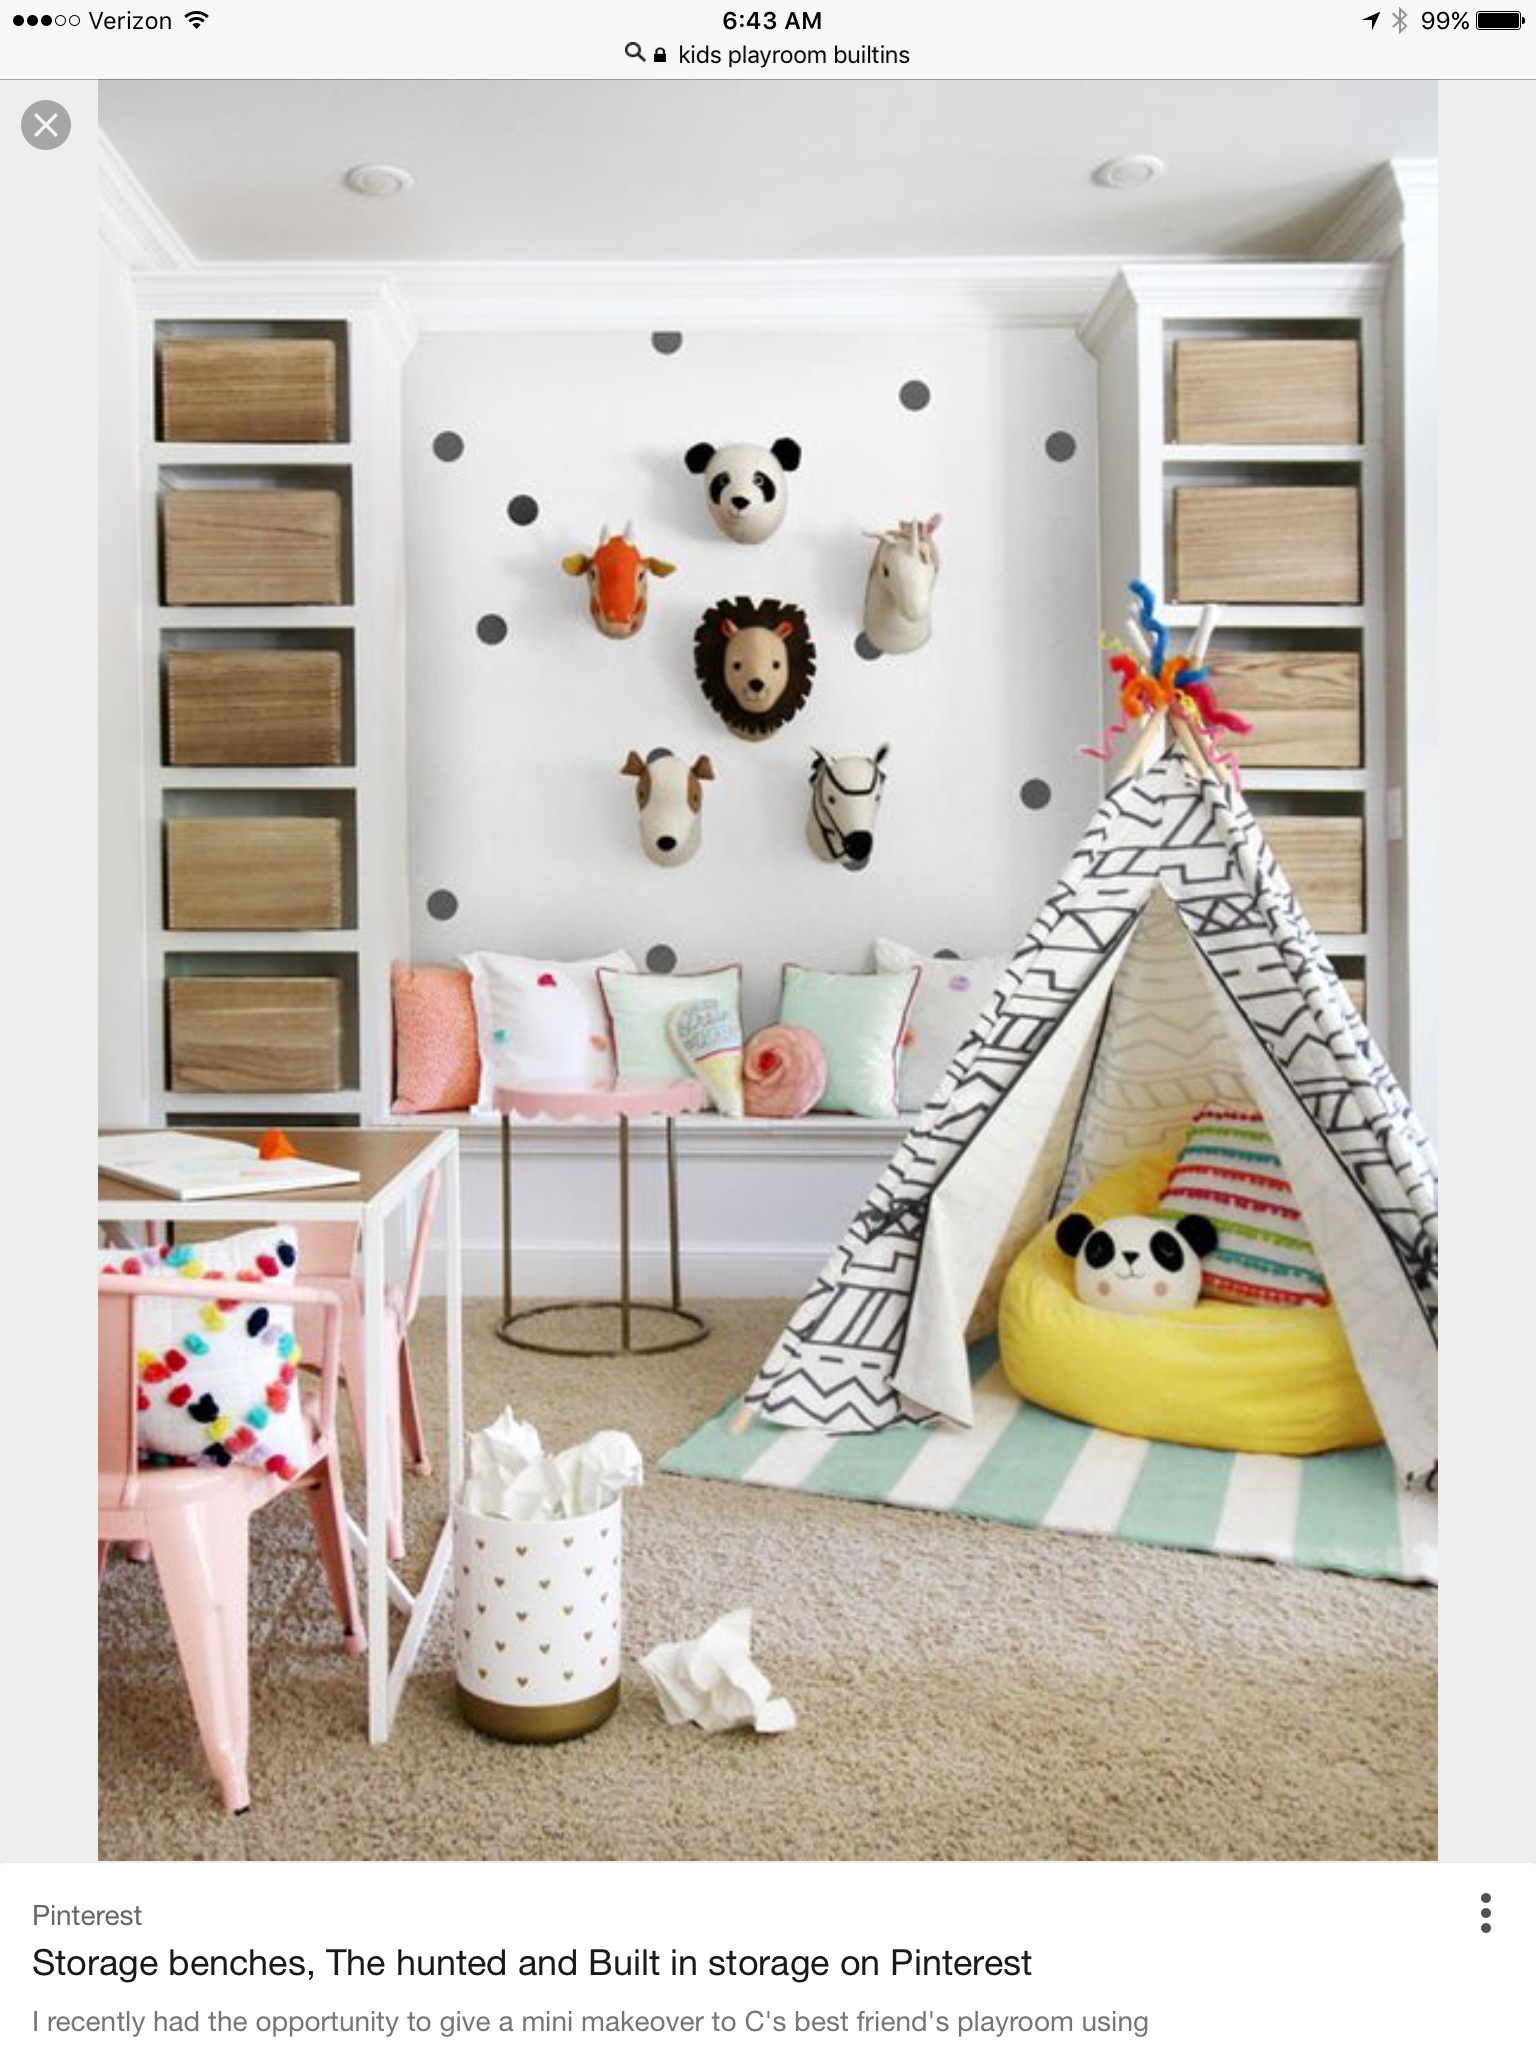 I Love Decorating Playroom Es For Kids Check Out This Post And Discover My 10 Amazing Ideas Colorful Fun Stylish Makeover On